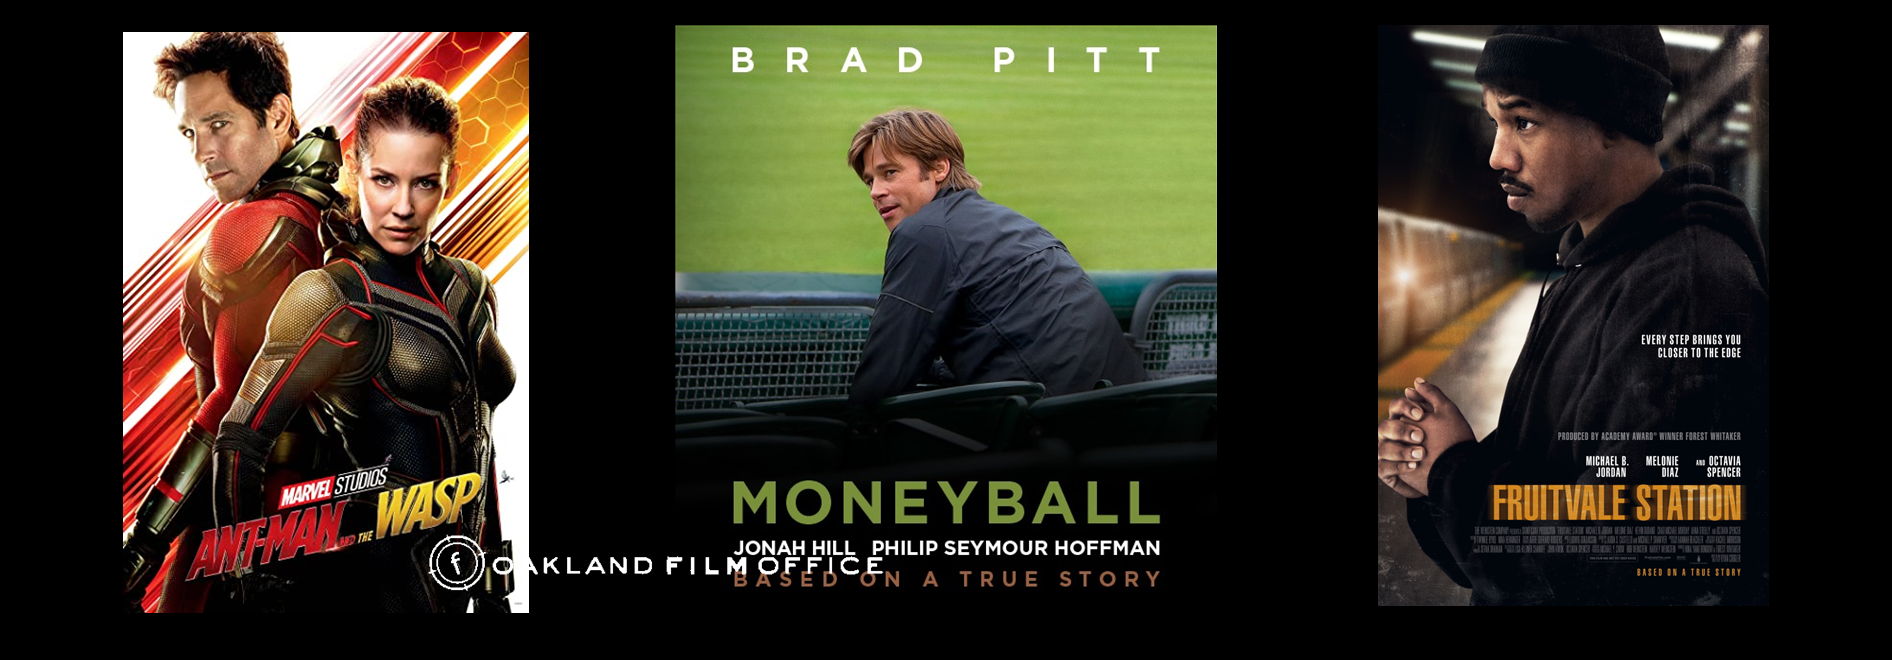 Ant Man 2 Moneyball and Fruitvale Station poster images Oakland Film Office website page header collage